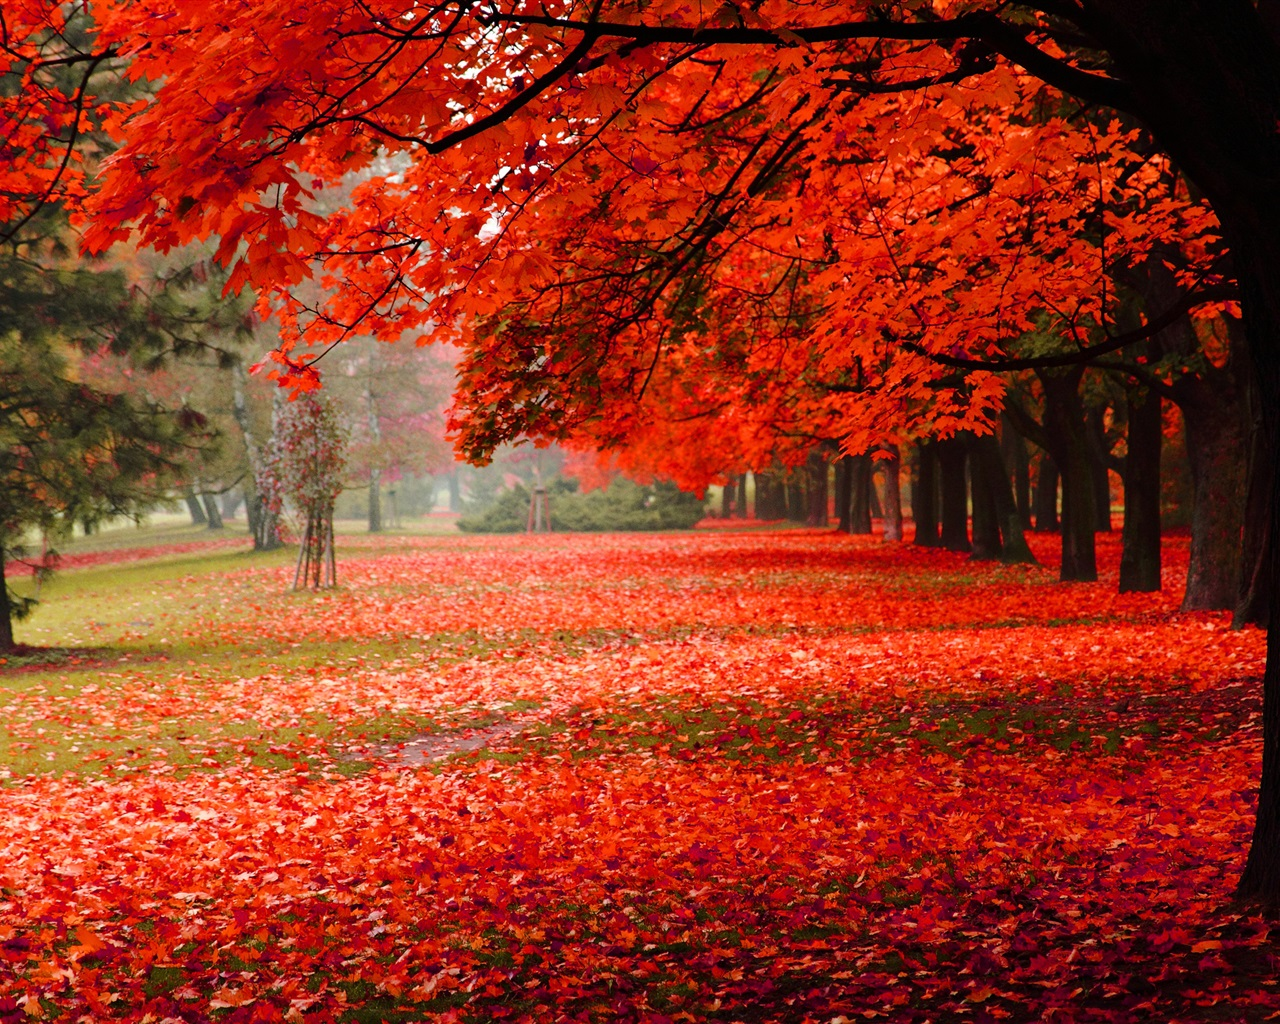 Beautiful autumn, red leaves 1280x1024 wallpaper